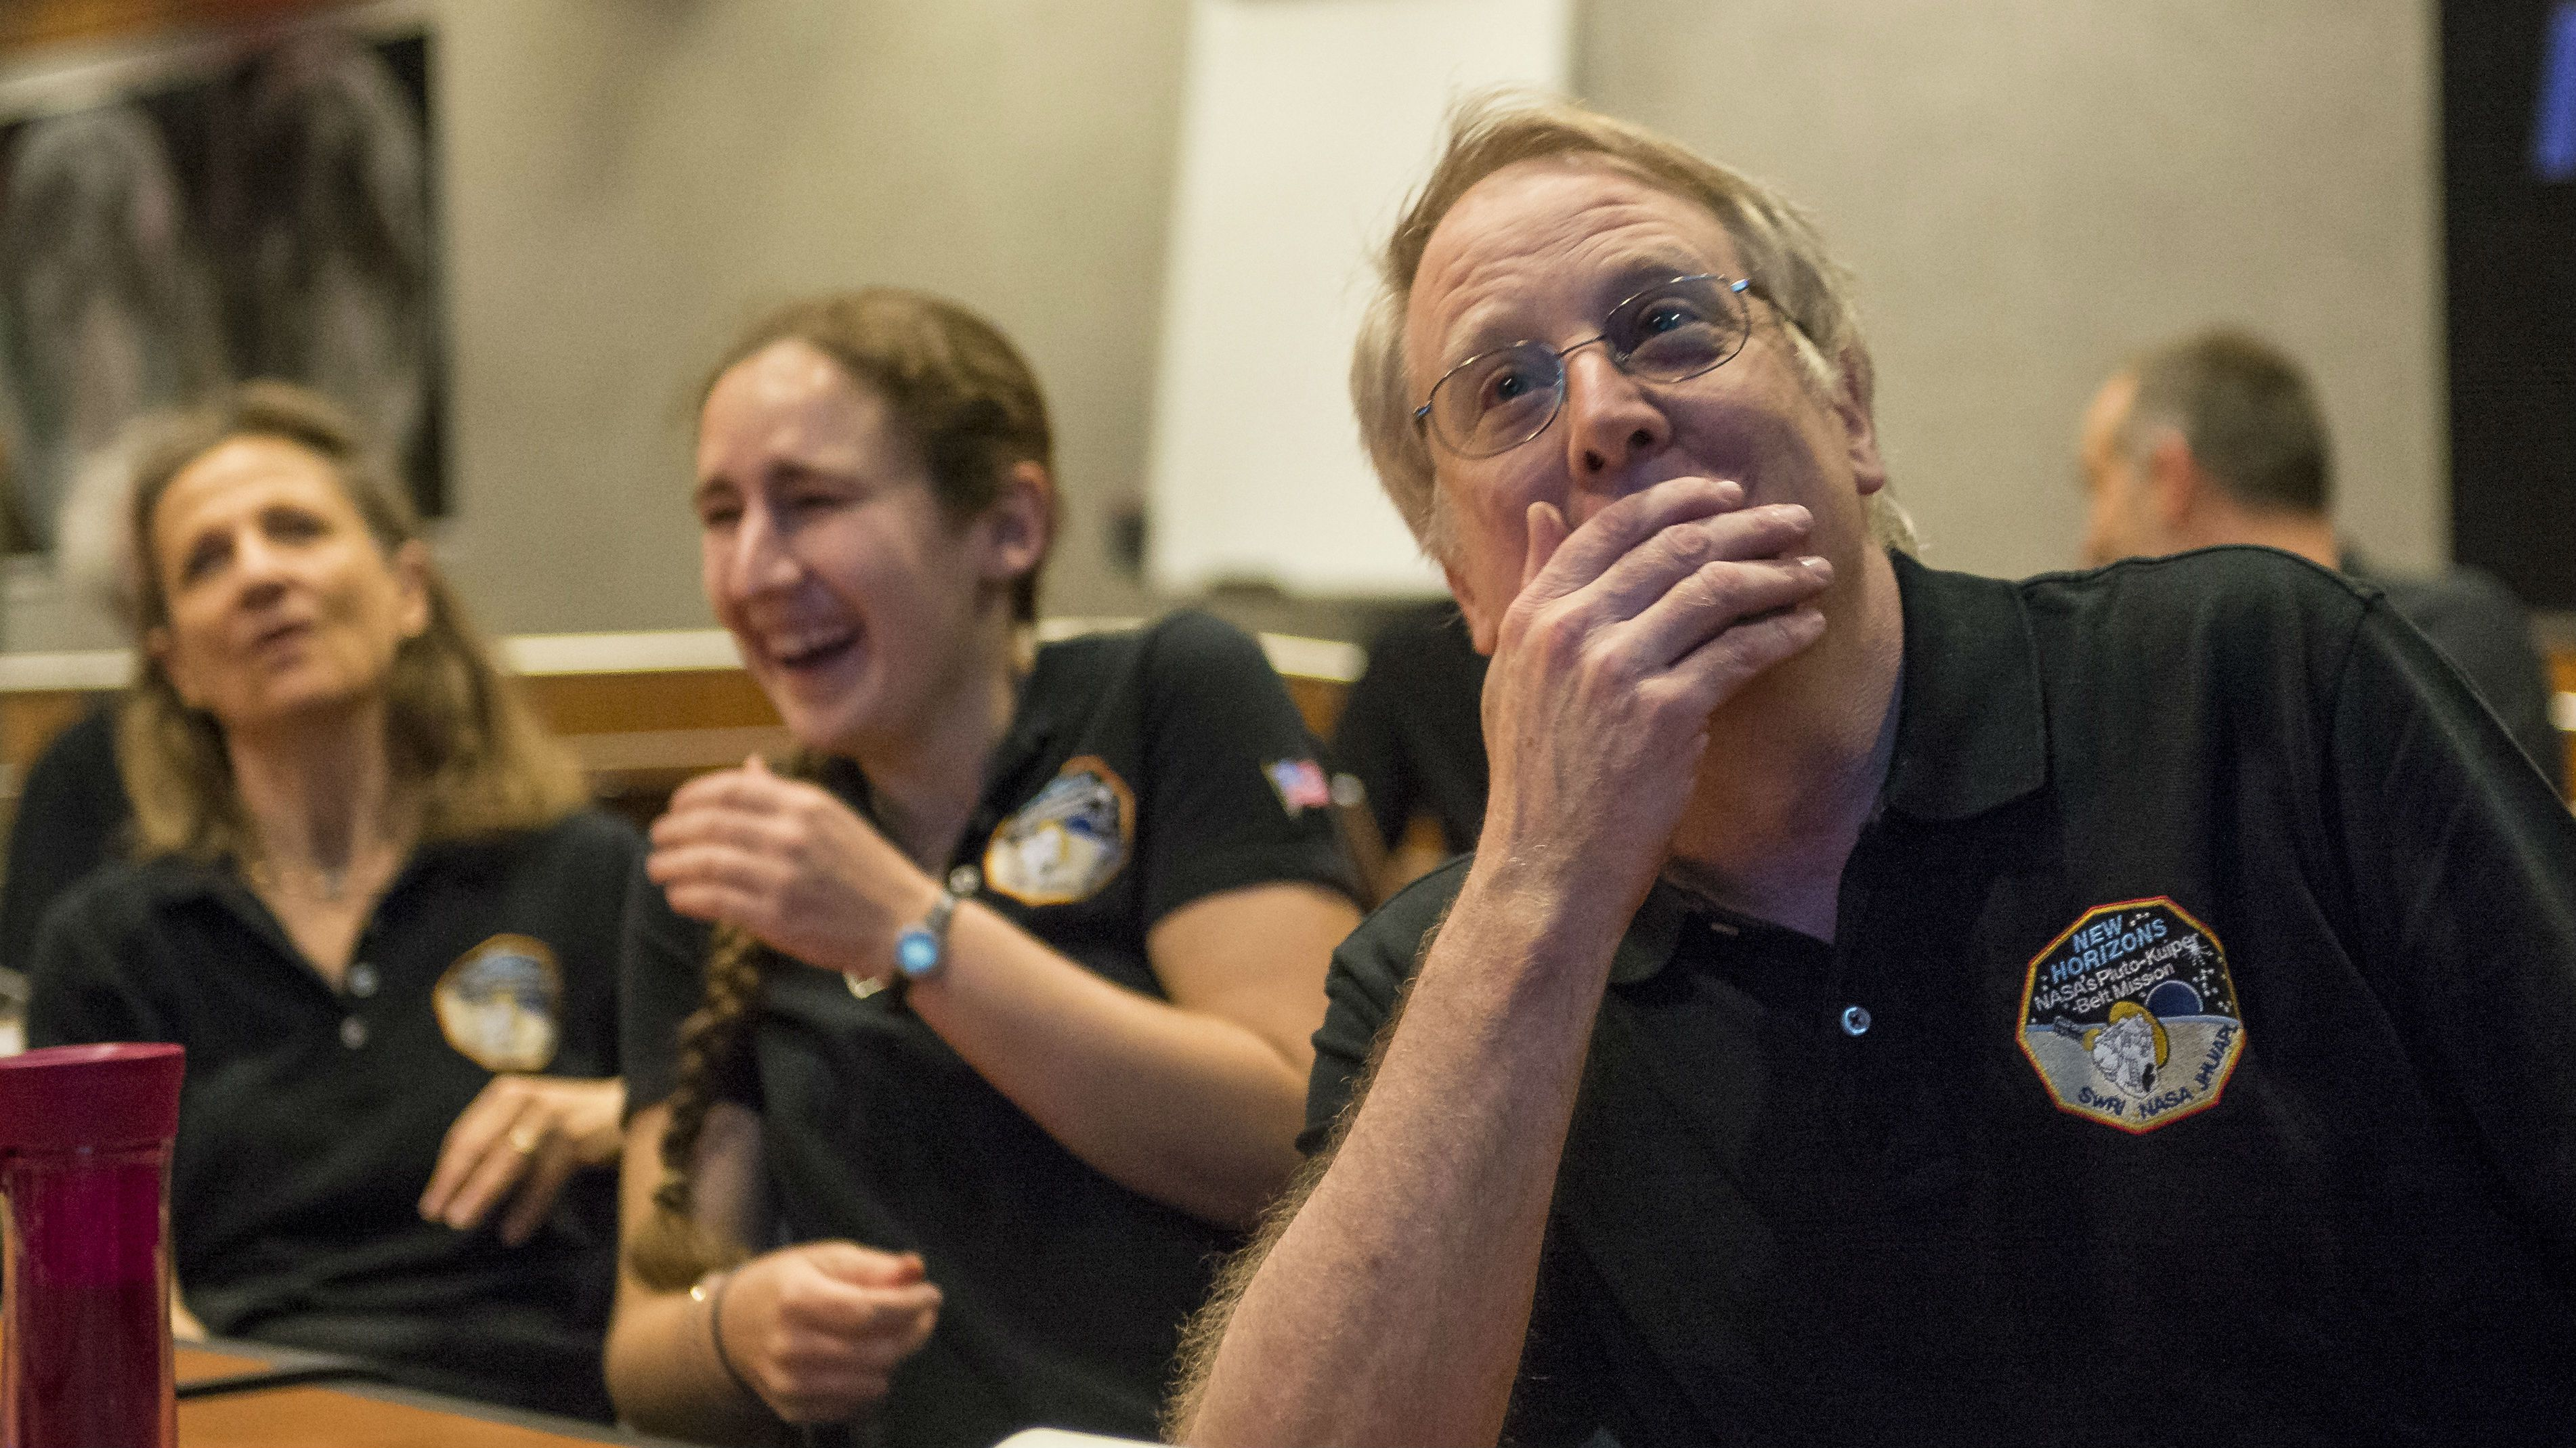 Members of the New Horizons science team react to seeing the spacecraft's last and sharpest image of Pluto before closest approach later in the day, Tuesday, July 14, 2015 at the Johns Hopkins University Applied Physics Laboratory (APL) in Laurel, Maryland. NASA's New Horizons spacecraft was on track to zoom within 7,800 miles (12,500 kilometers) of Pluto on Tuesday. (Bill Ingalls/NASA via AP)